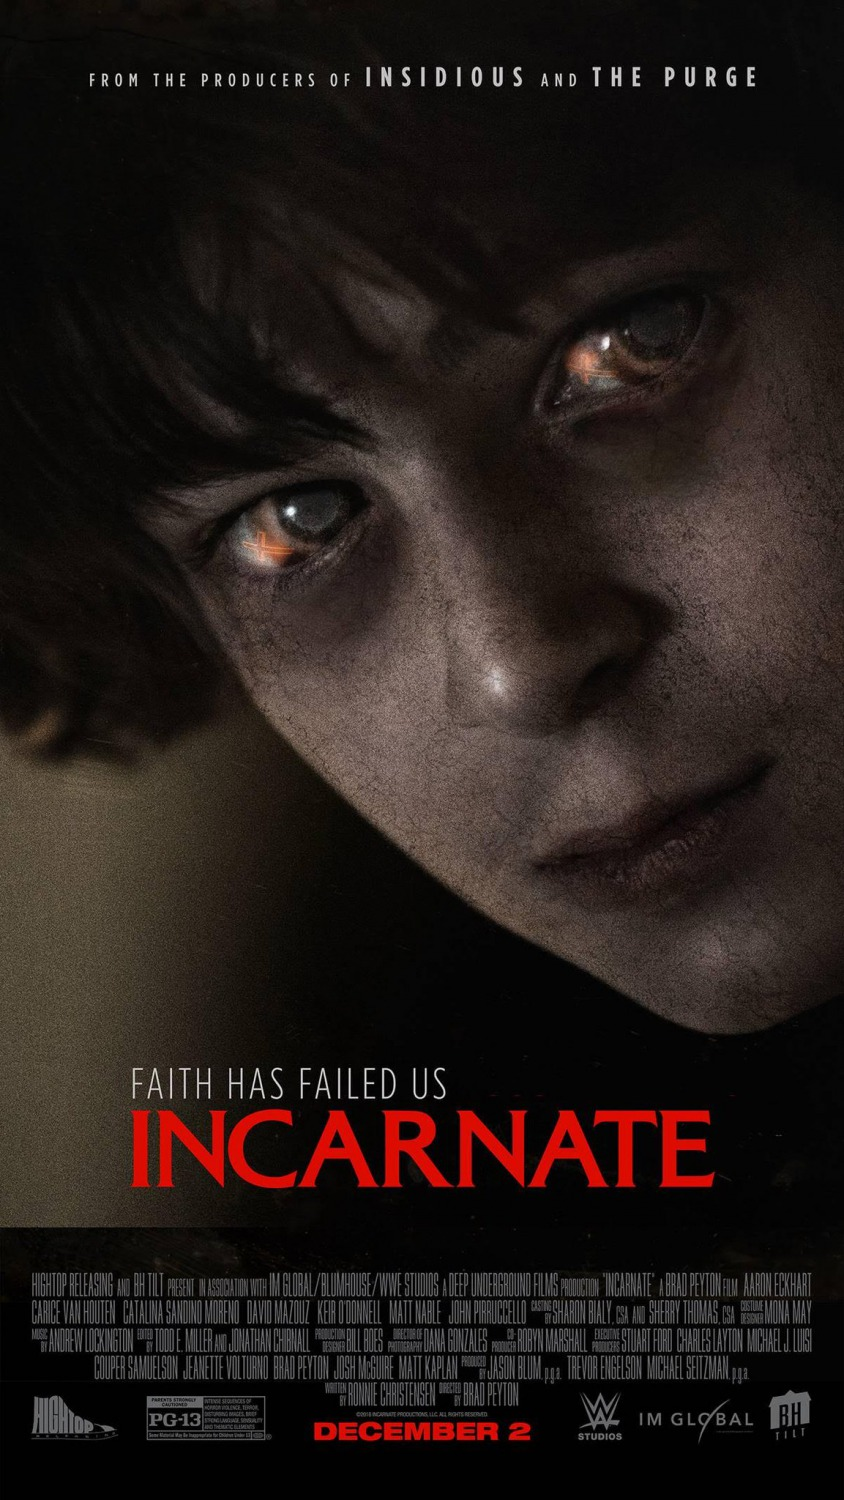 Image result for incarnate movie poster